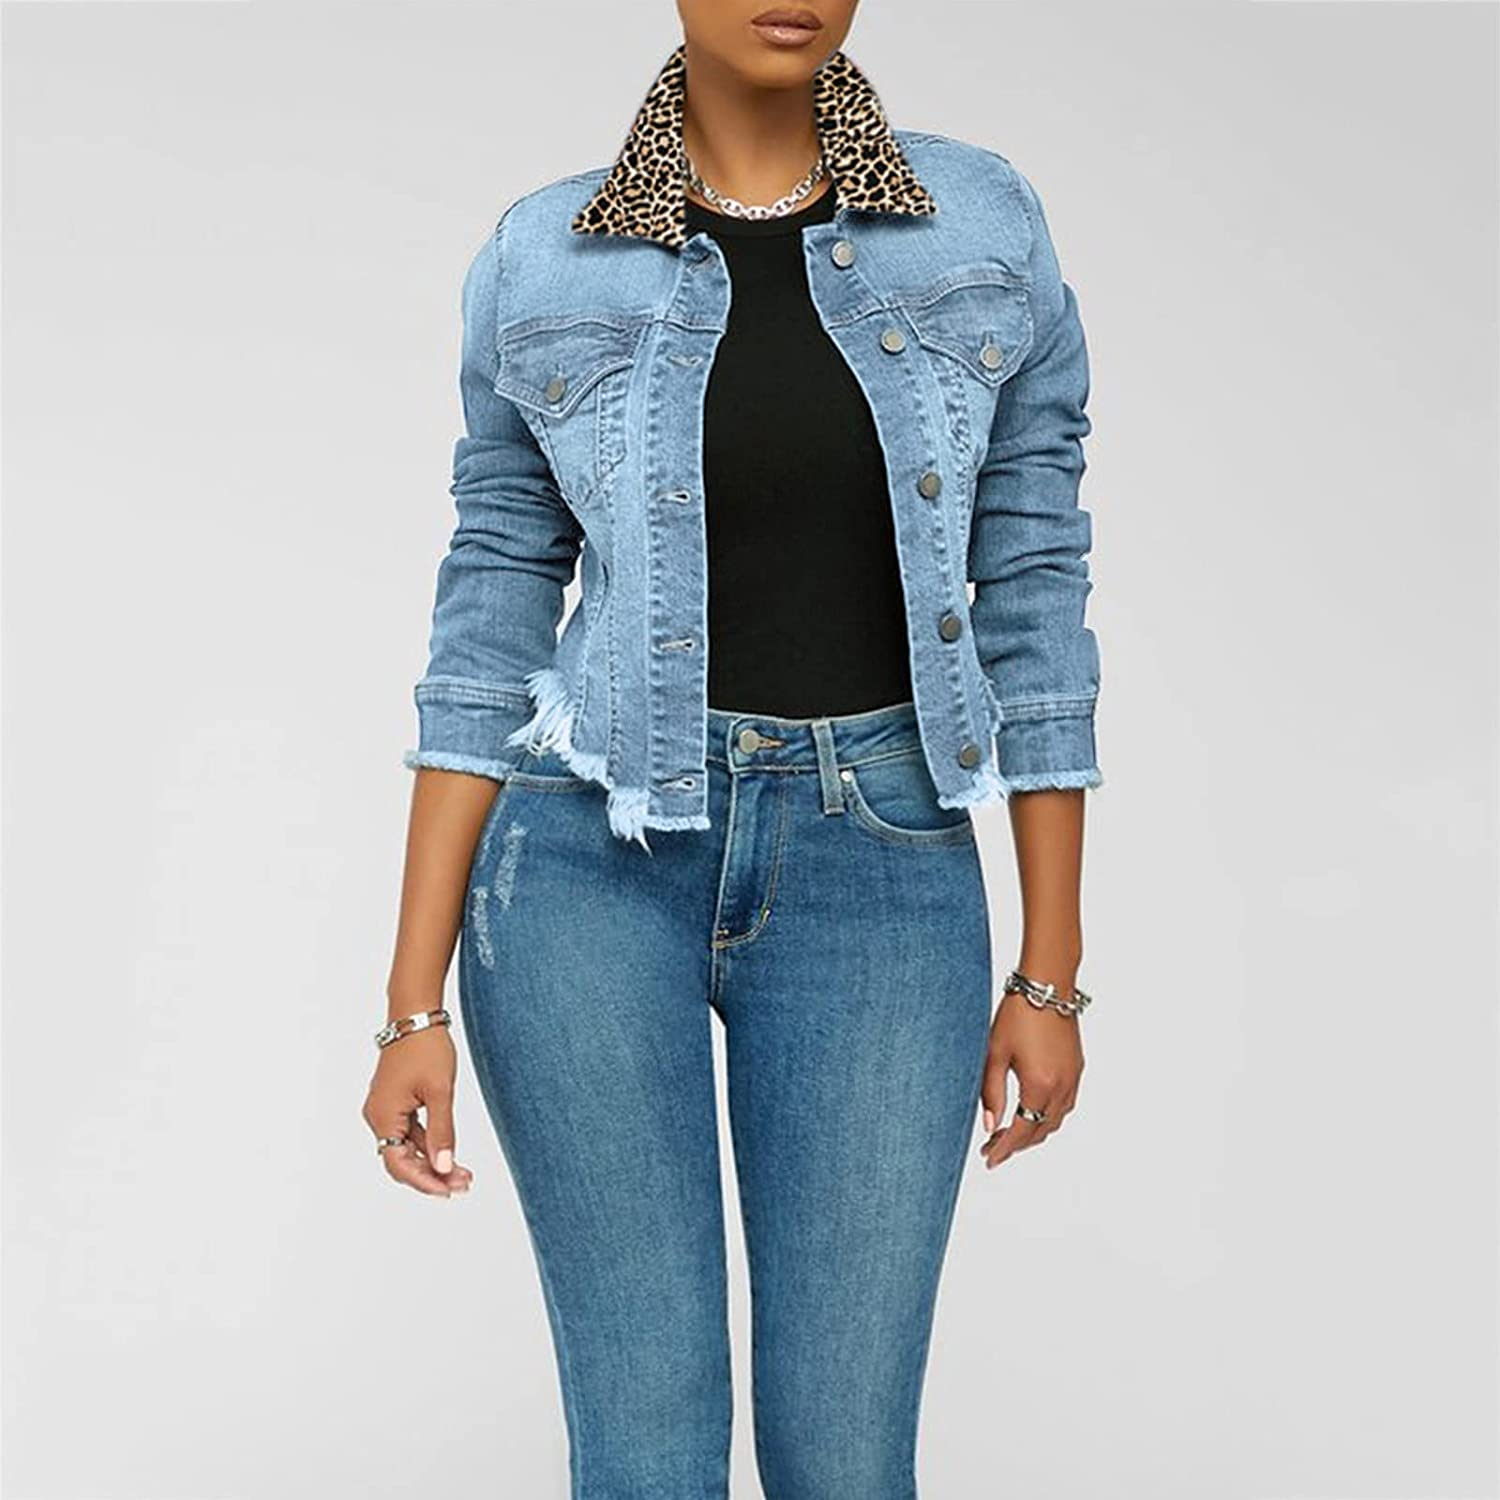 Euone_Clothes Jackets for Women Fashion, Womens Casual Blouse Women's Button Perforated Denim Jacket with Pocket Coat